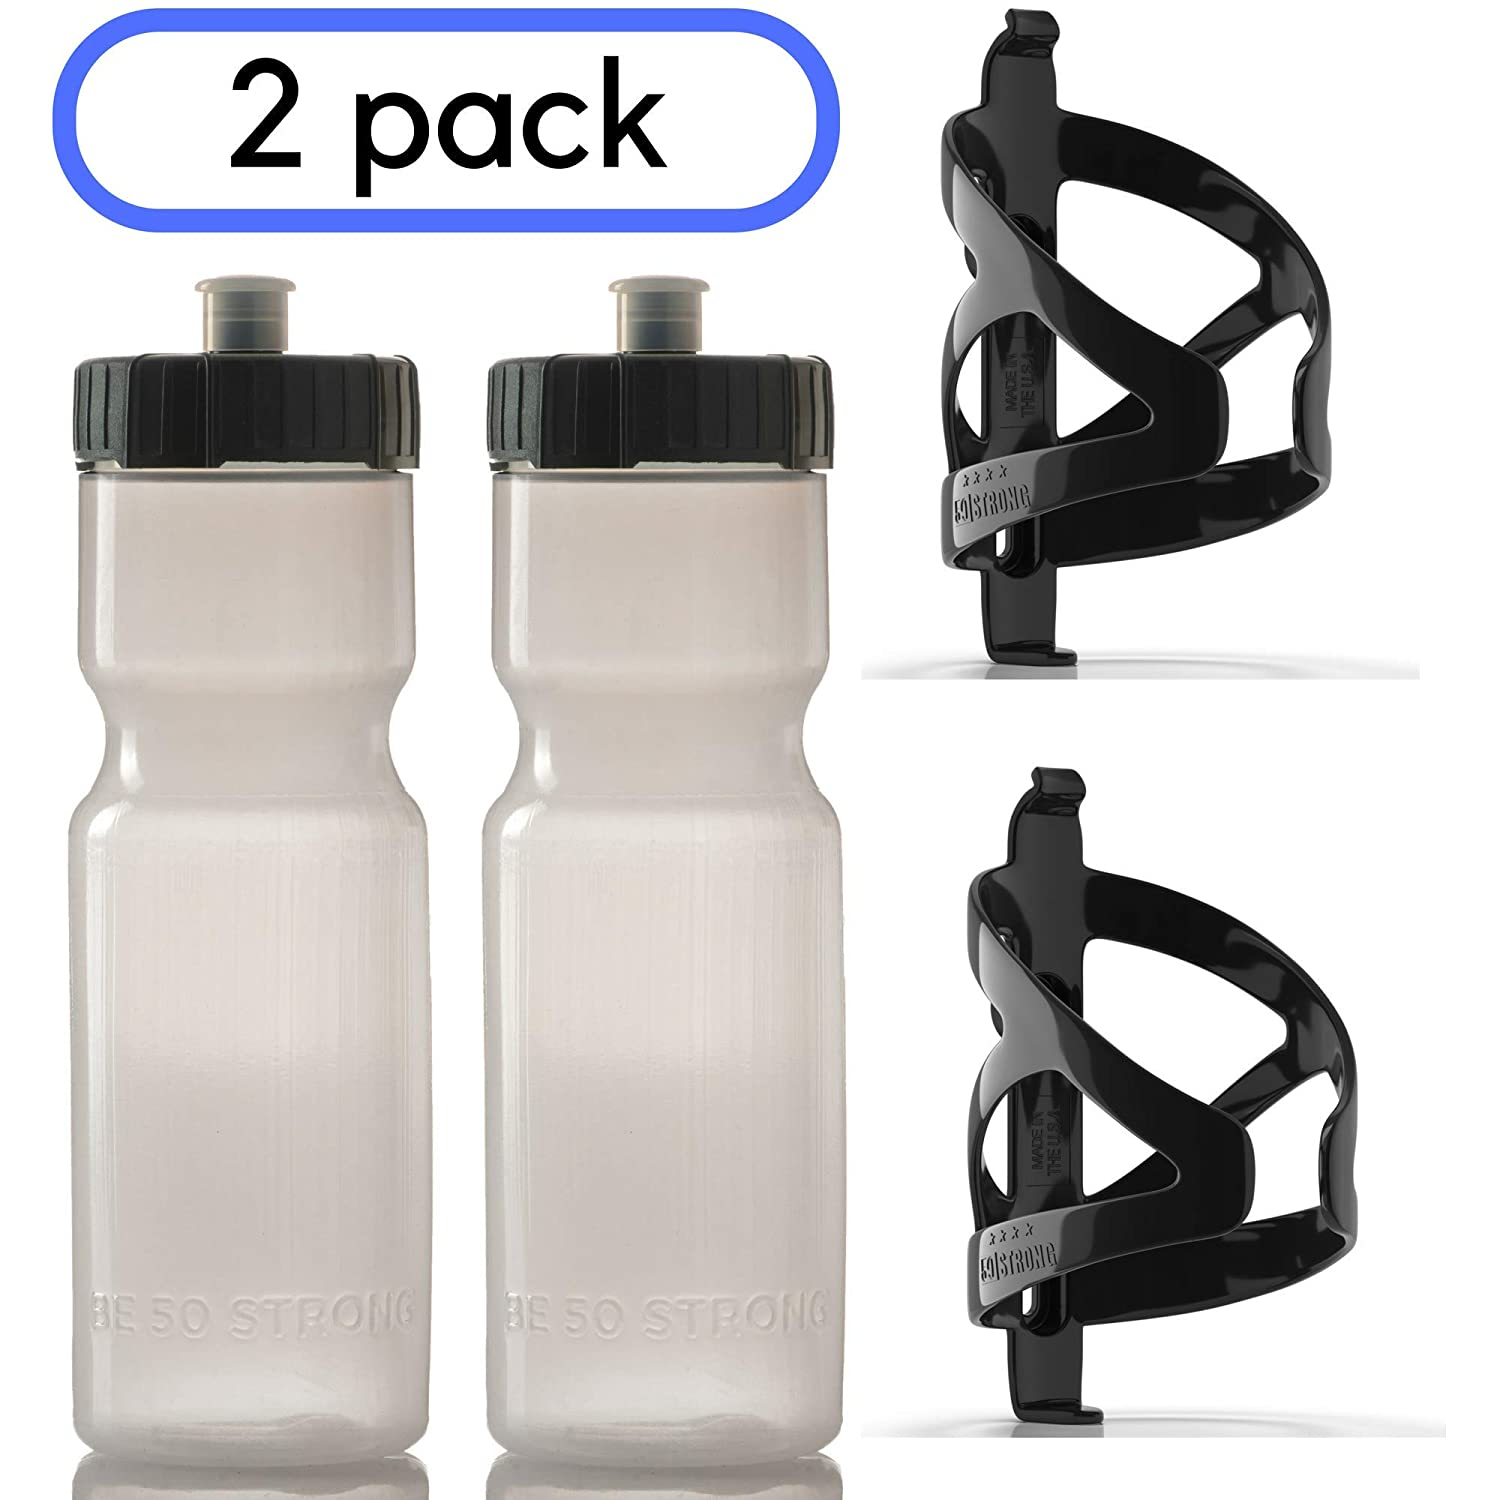 50 Strong Bike Bottle Holder with Water Bottle – 2 Pack – 22 oz. BPA Free Bicycle Squeeze Bottle and Durable Plastic Holder Cage- Made in USA